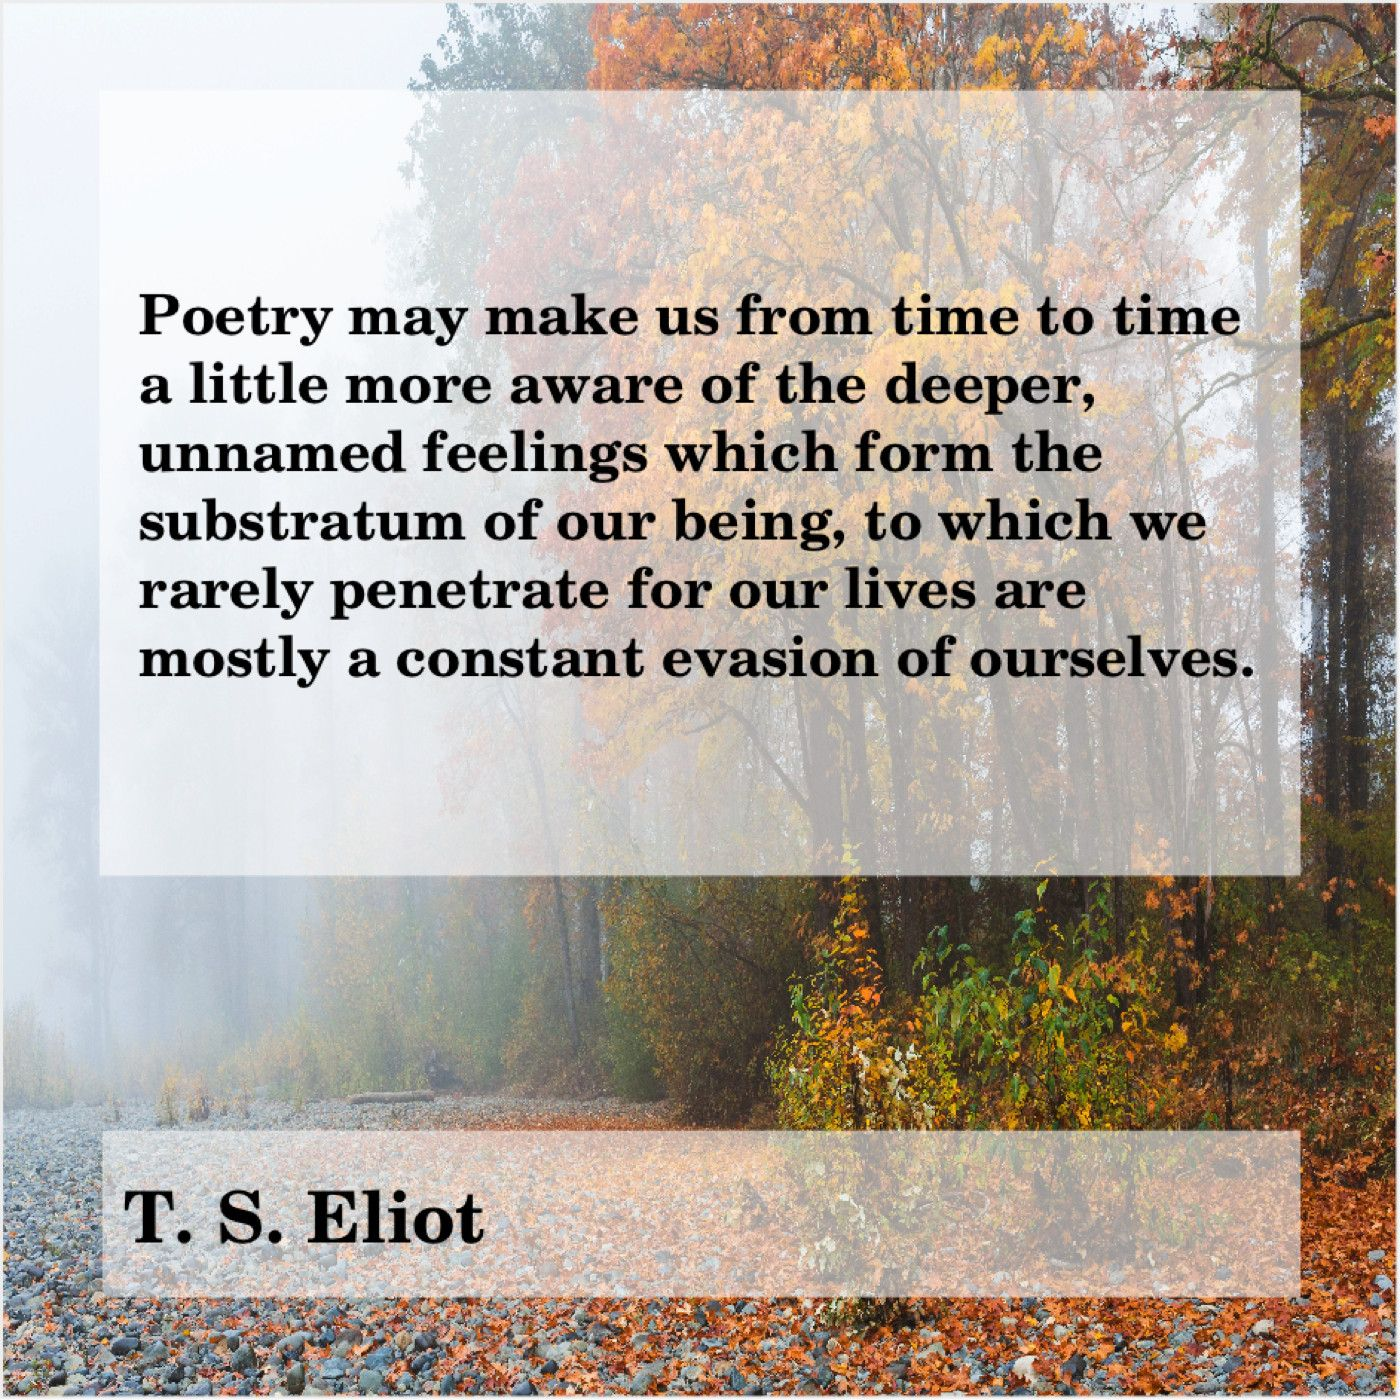 T S Eliot Poetry May Make Us From Larry Page Beautiful Person Bad Leadership